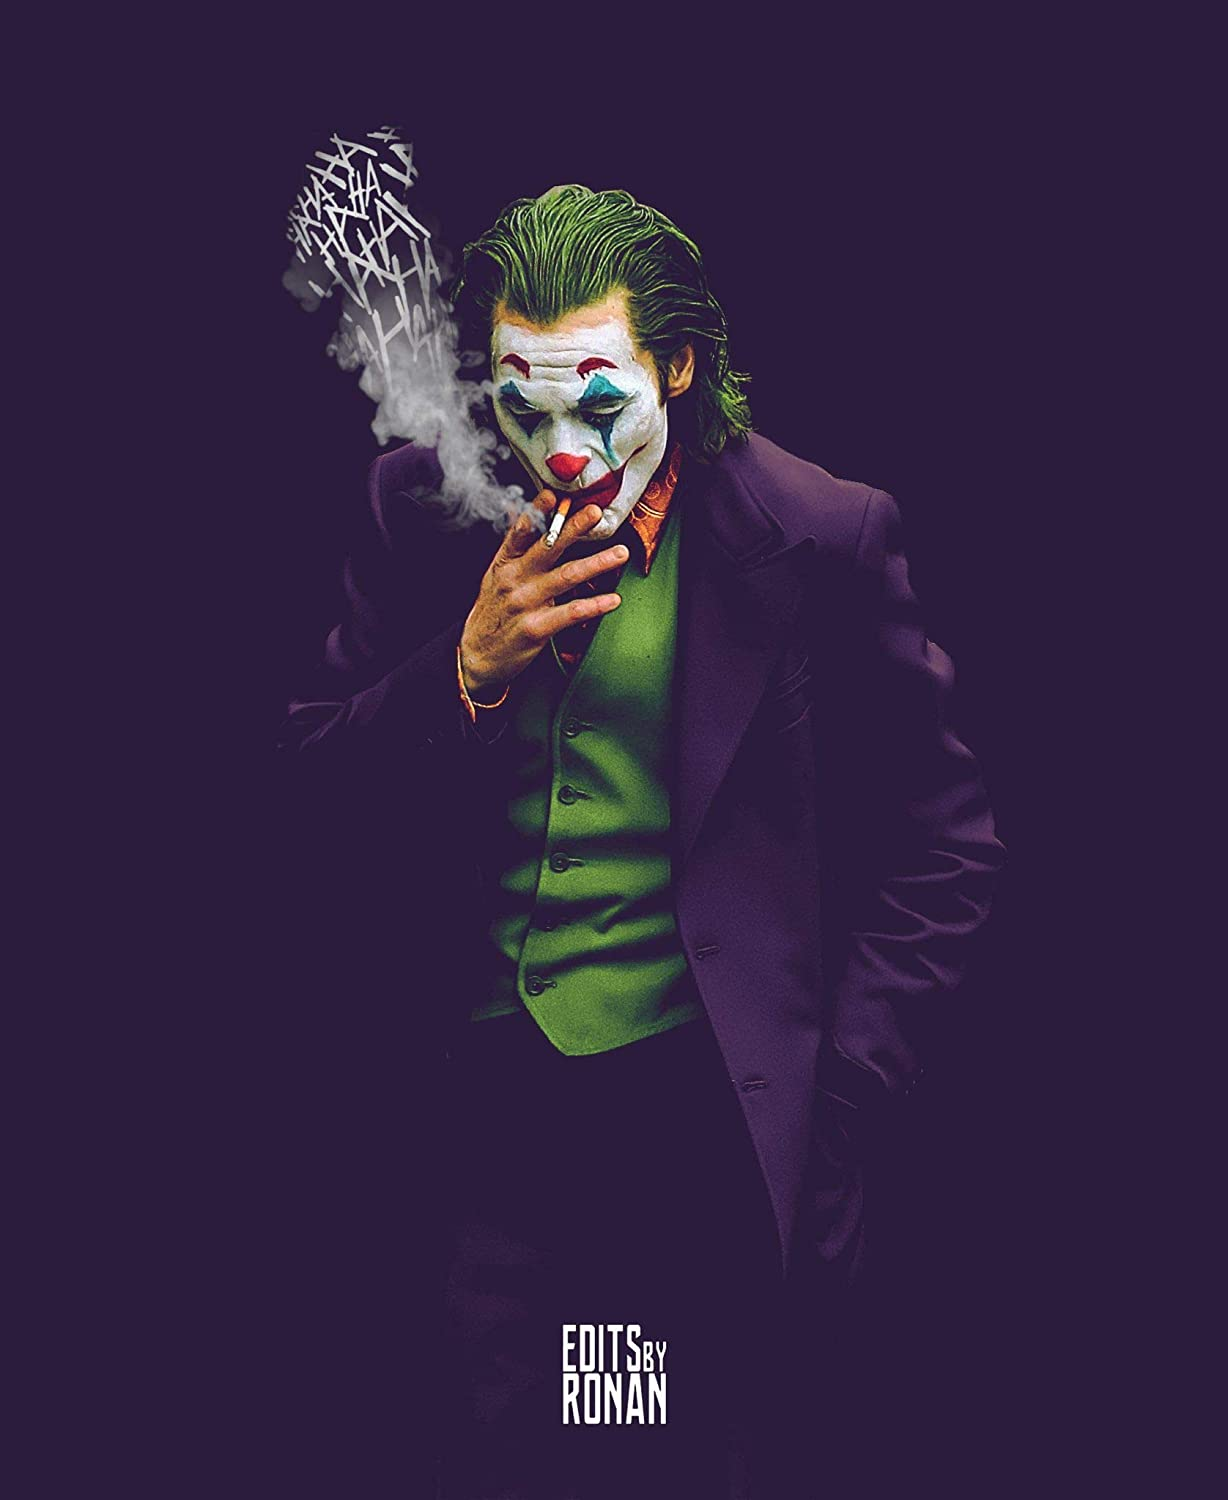 United Mart Poster Joker Joaquin Phoenix Cesar Romero Smoking Movie 2019 Cover Poster Size 12 x 18 Inch Rolled Poster